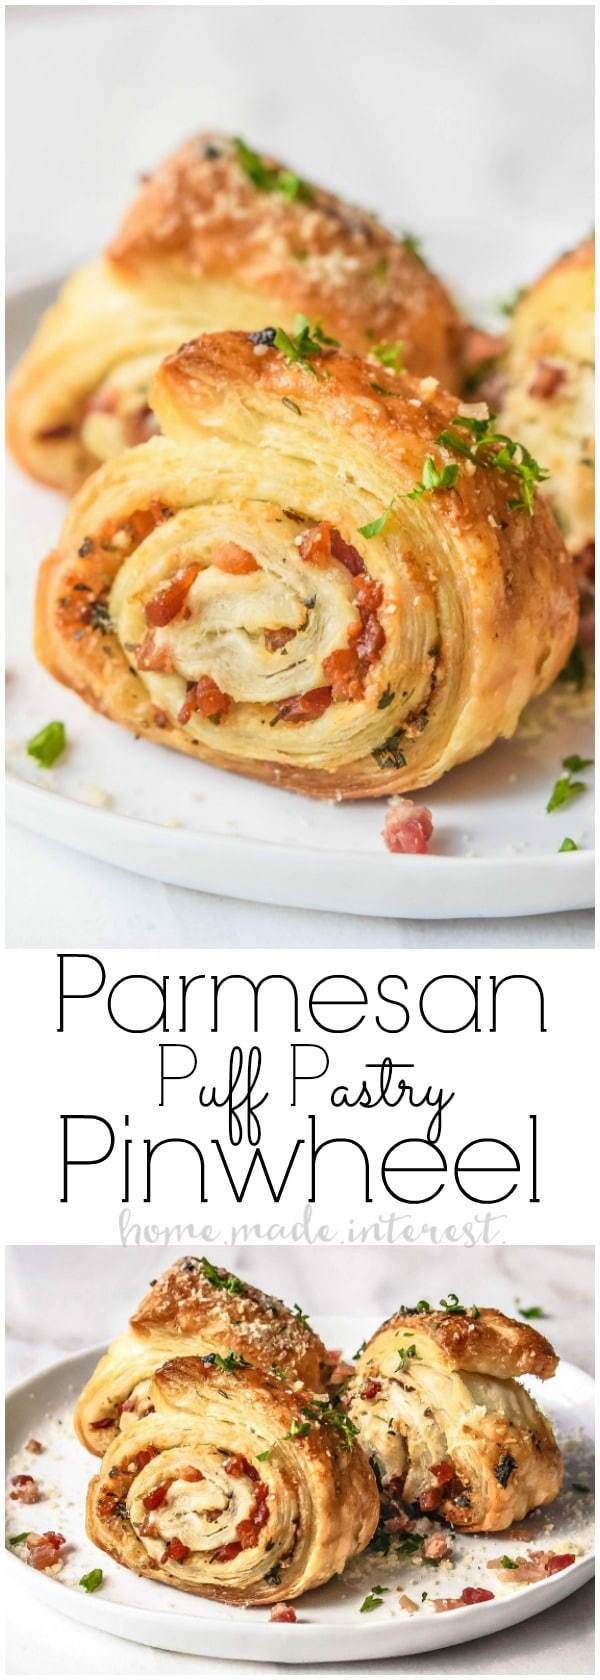 Parmesan Puff Pastry Pinwheel | This easy appetizer recipe makes a great New Year's Eve appetizer or an elegant appetizer for parties. A puff pastry pinwheel filled with parmesan cheese and crisp cooked pancetta.